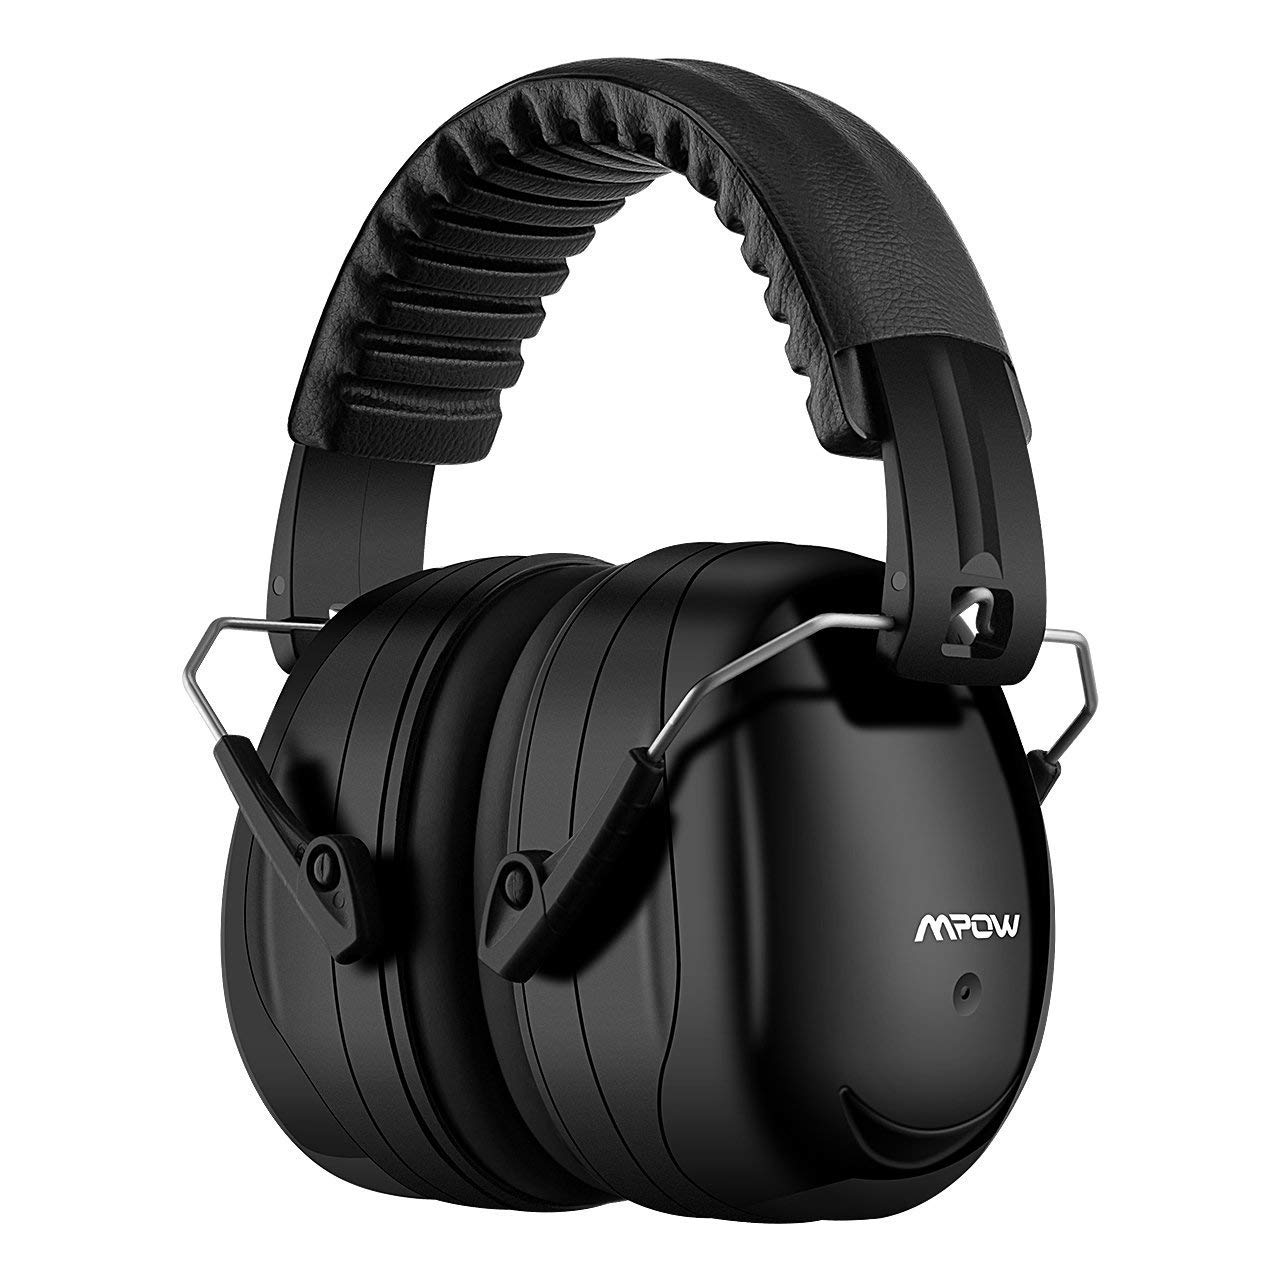 Mpow 035 Noise Reduction Safety Ear Muffs, Shooters Hearing Protection Ear Muffs, Adjustable Shooting Ear Muffs, NRR 28dB Ear Defenders for Shooting Hunting Season, with a Carrying Bag- Black by Mpow